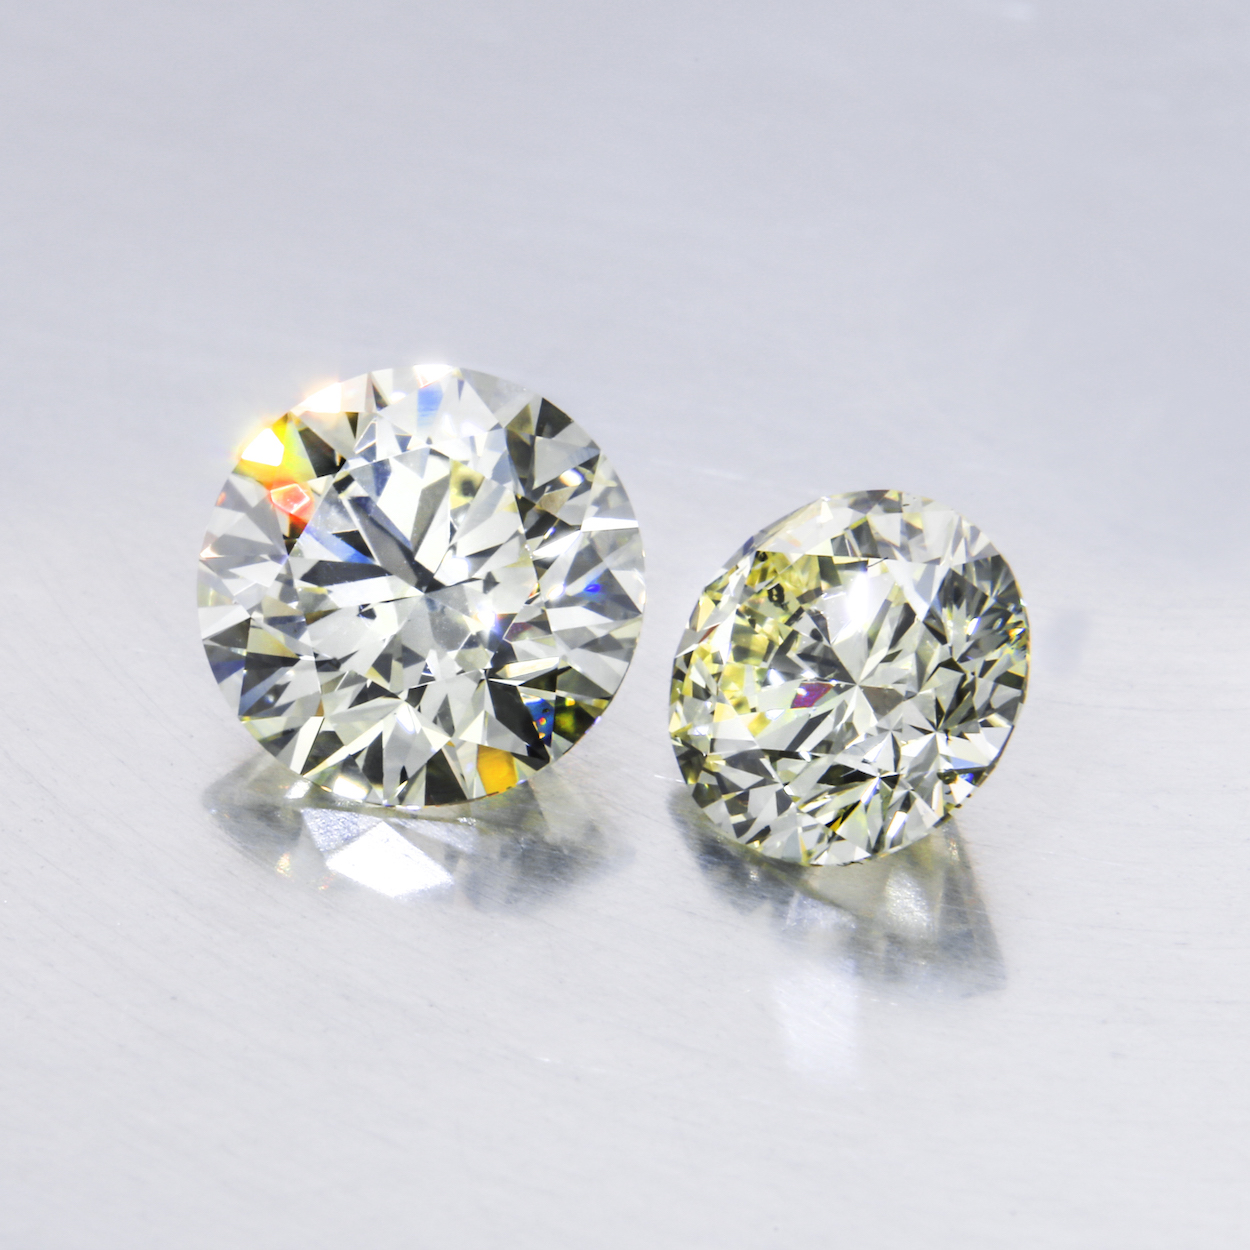 e to color revealed detailed diamond click answers with comparisons photos grade here by comparison side